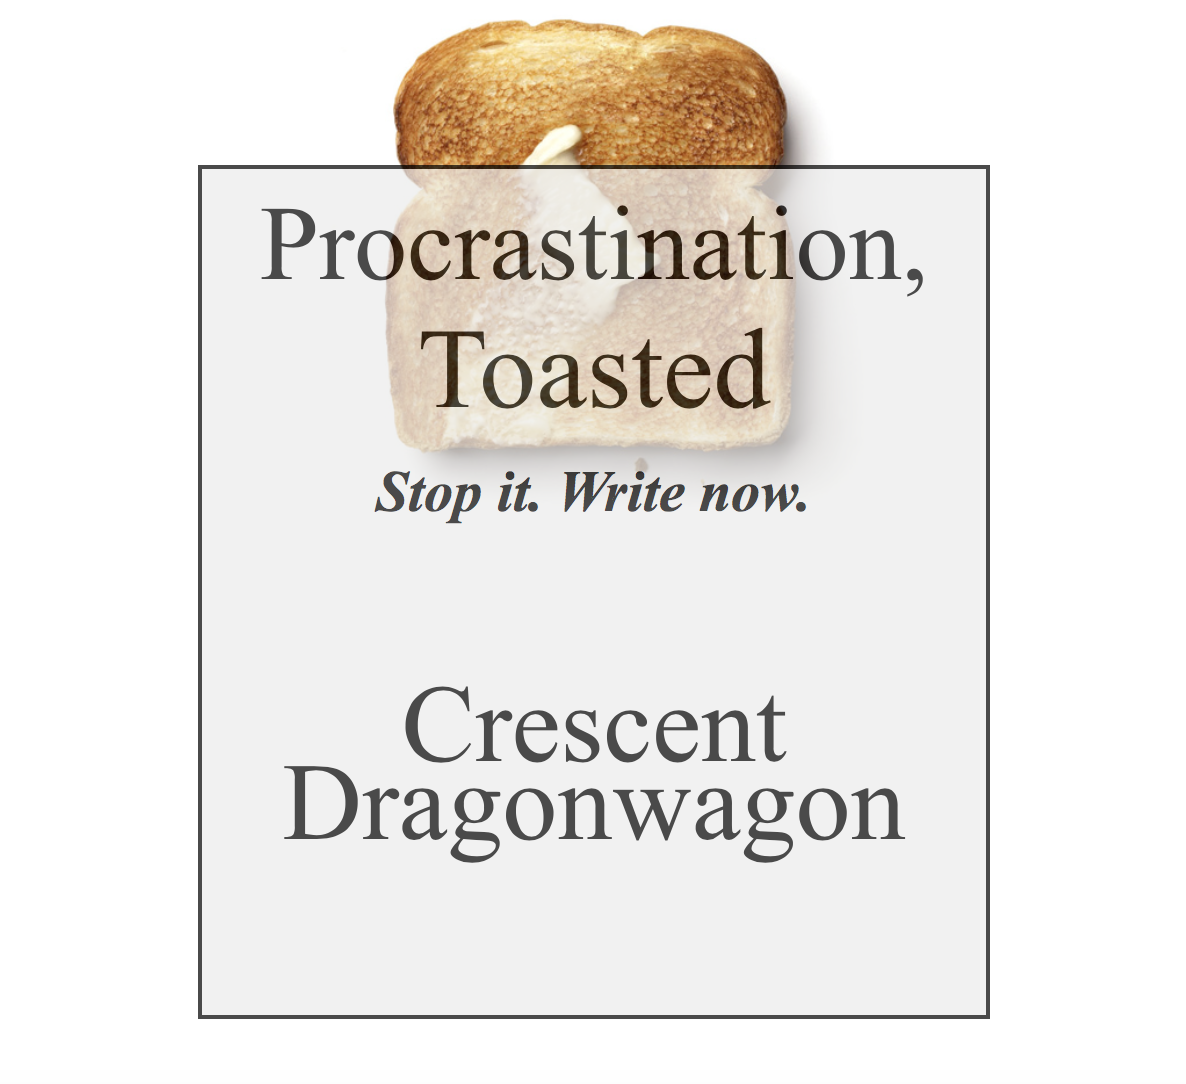 Procrastination Toasted Ebook